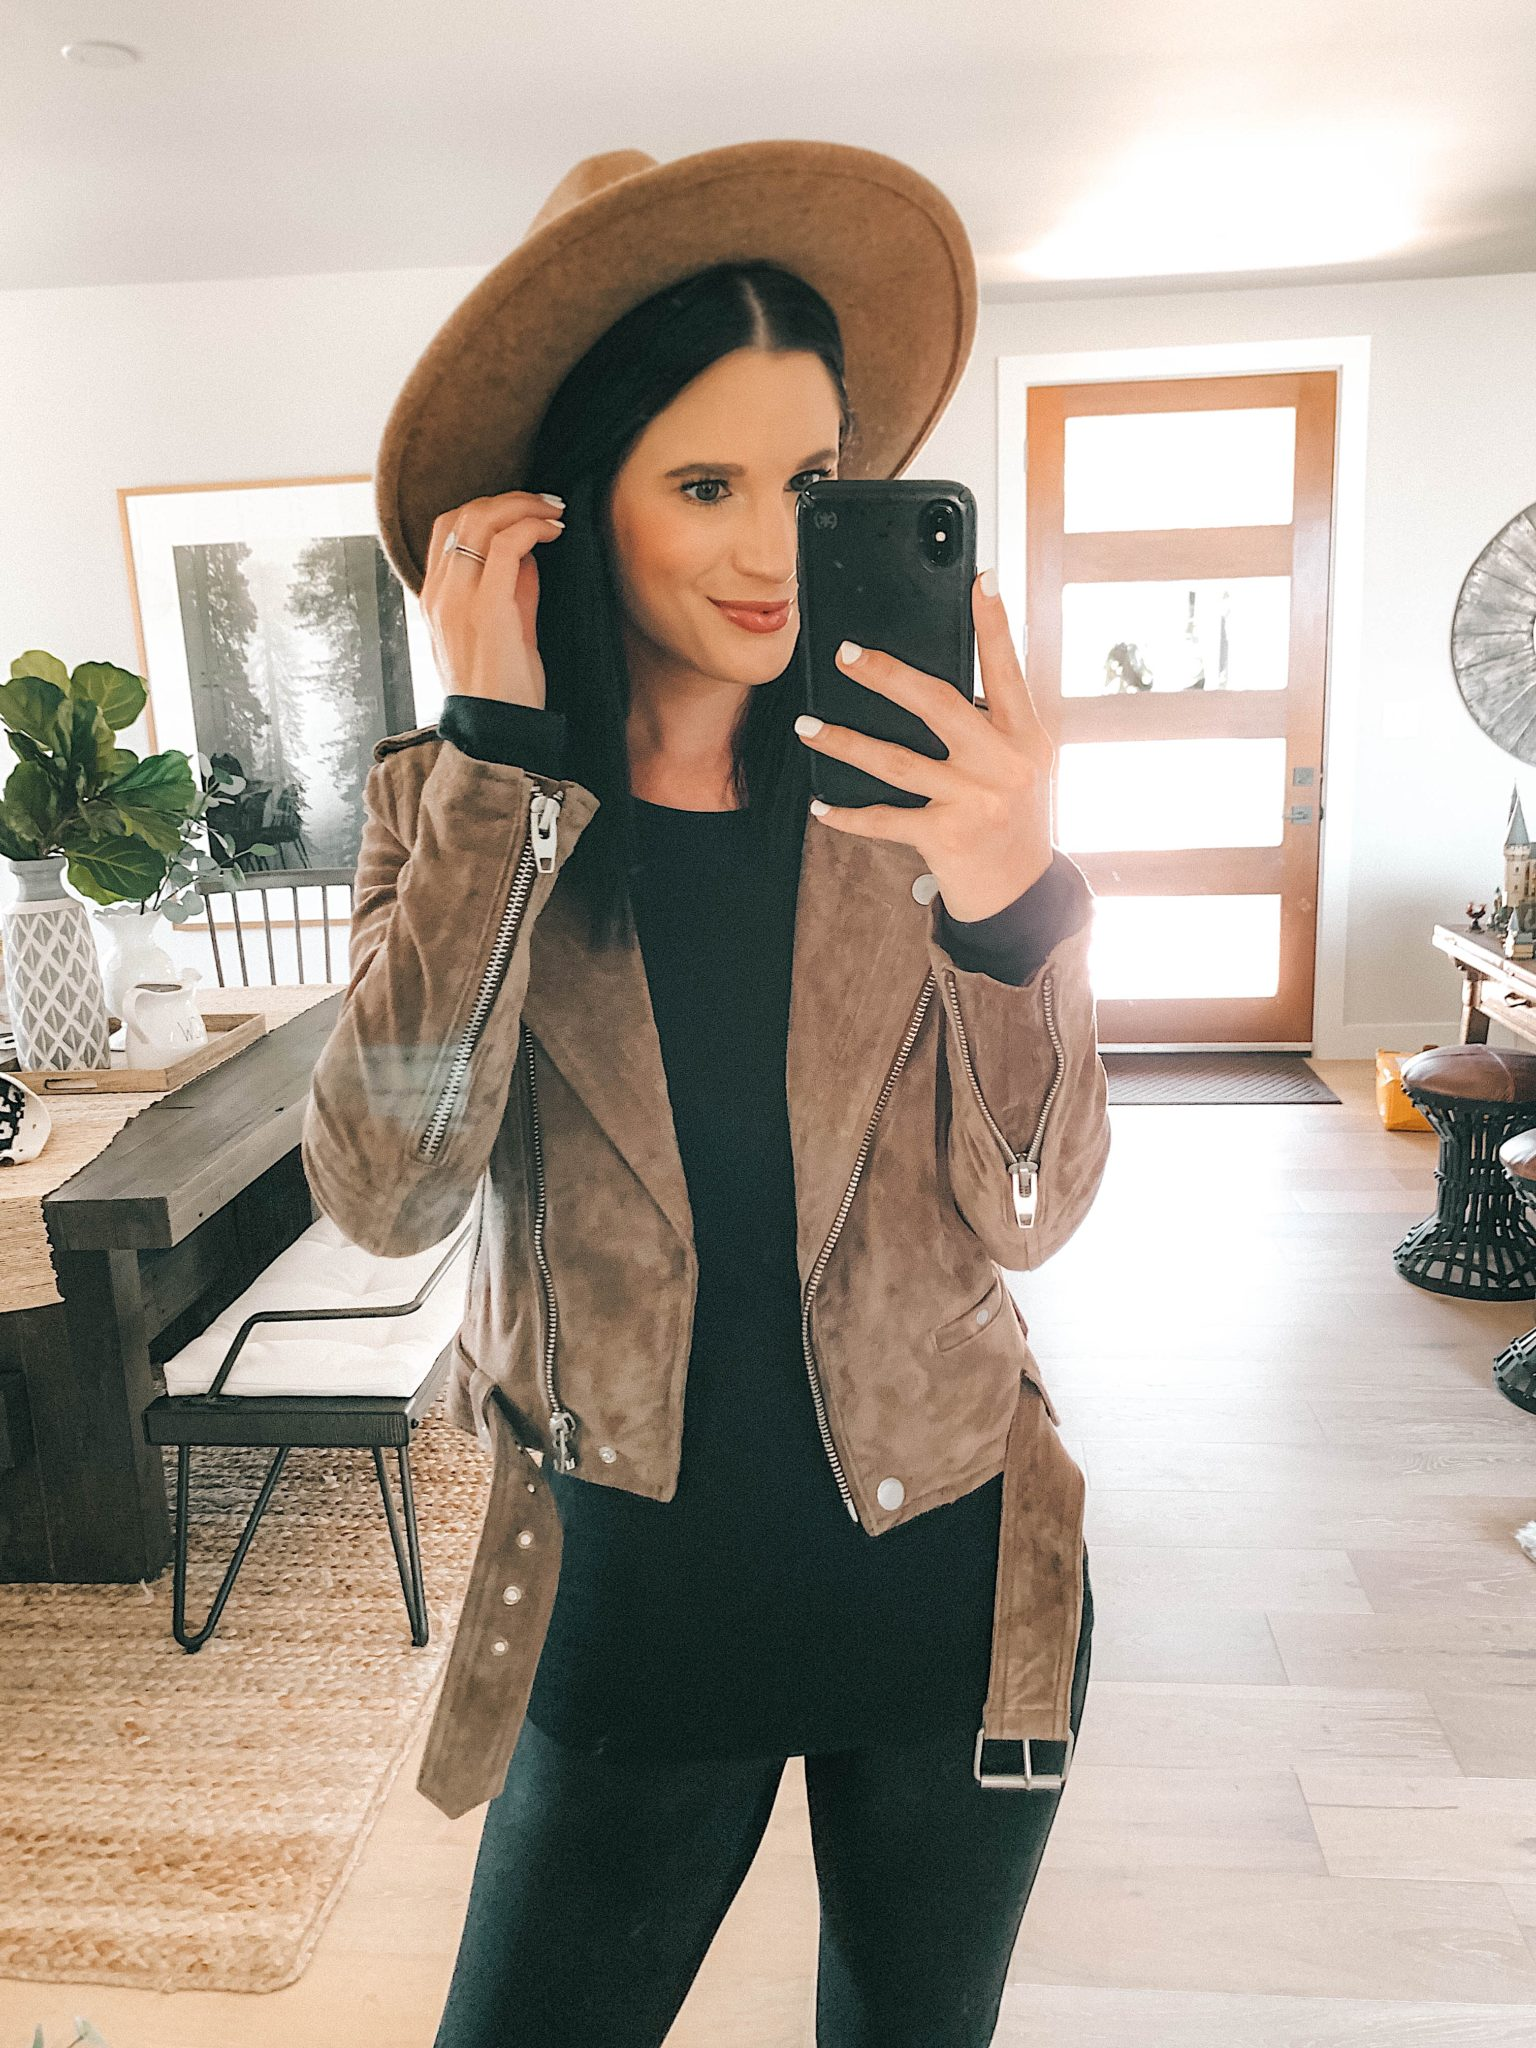 Nordstrom Anniversary Sale by popular Austin fashion blog, Dressed to Kill: image of a woman wearing a brown suede jacket, brown felt fedora, and black long sleeve top.